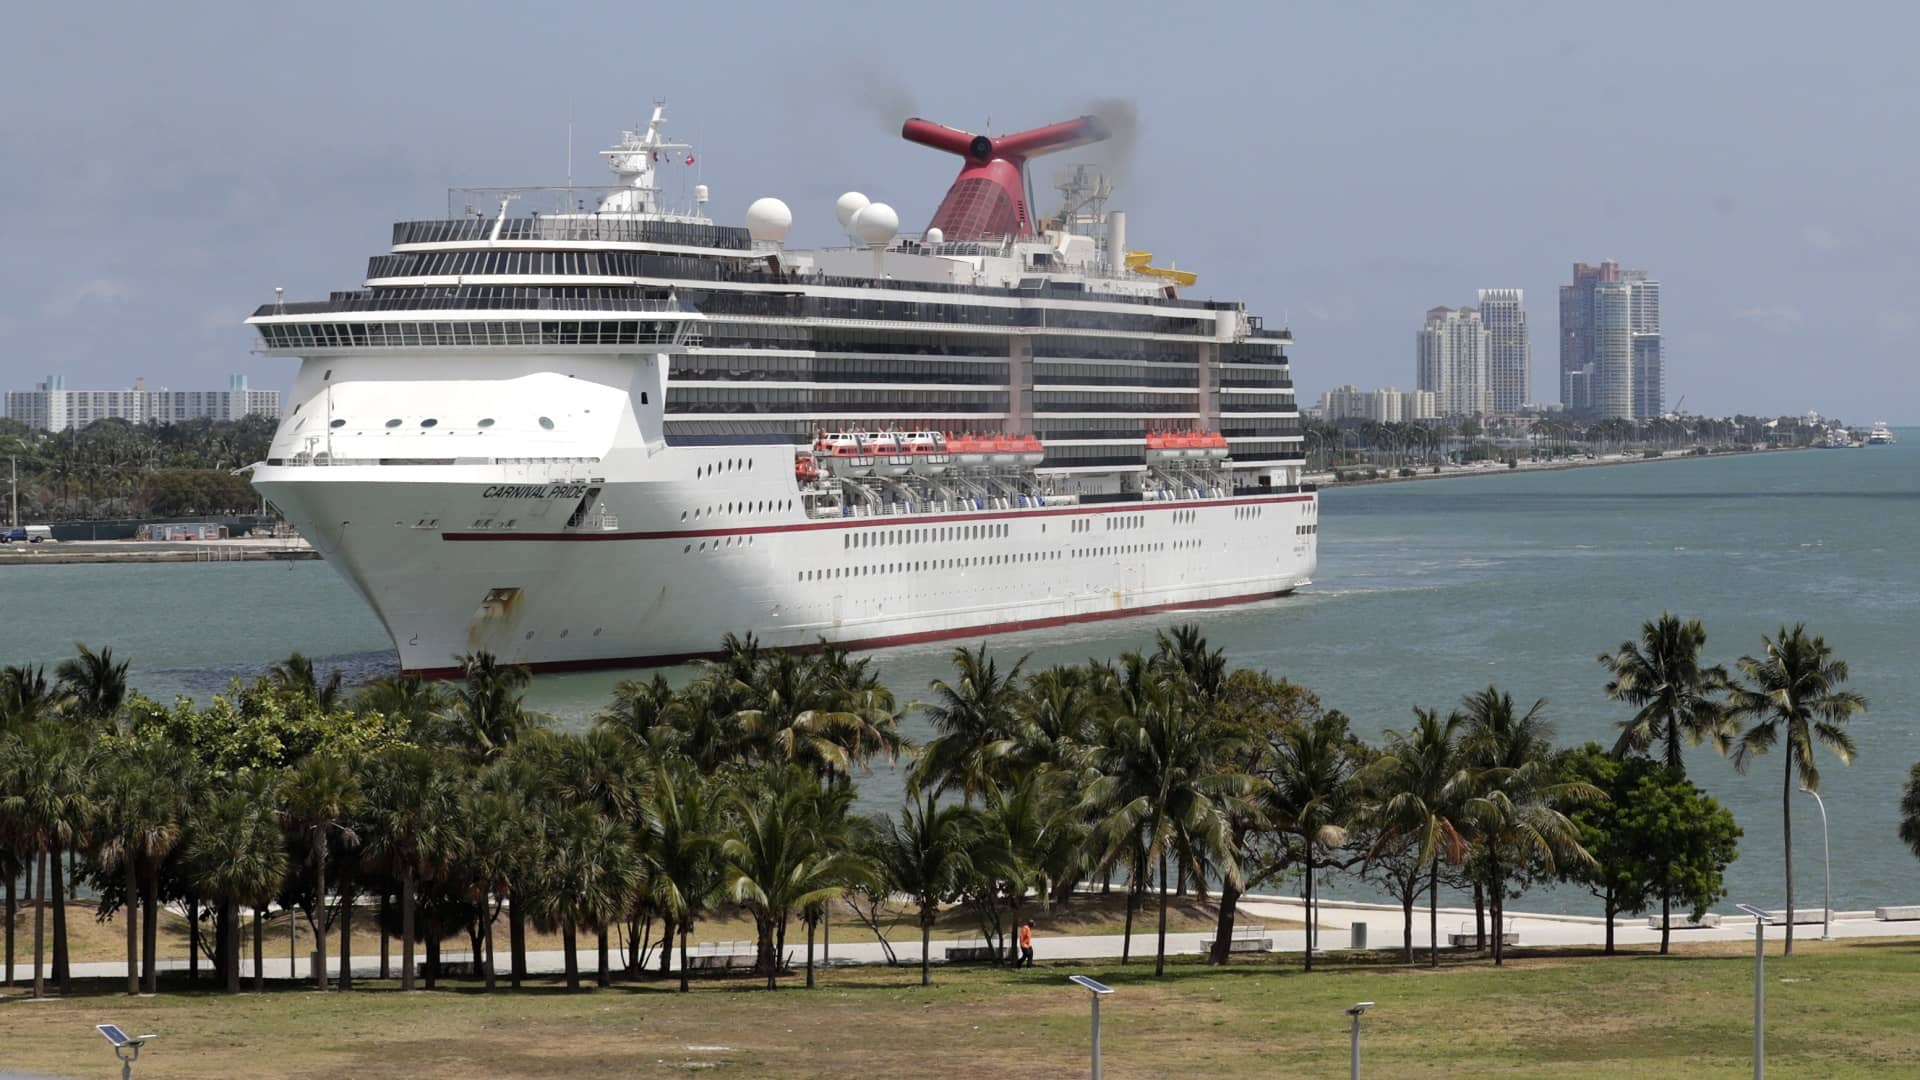 Anchors aweigh: Cruise ship prepped to leave Baltimore port